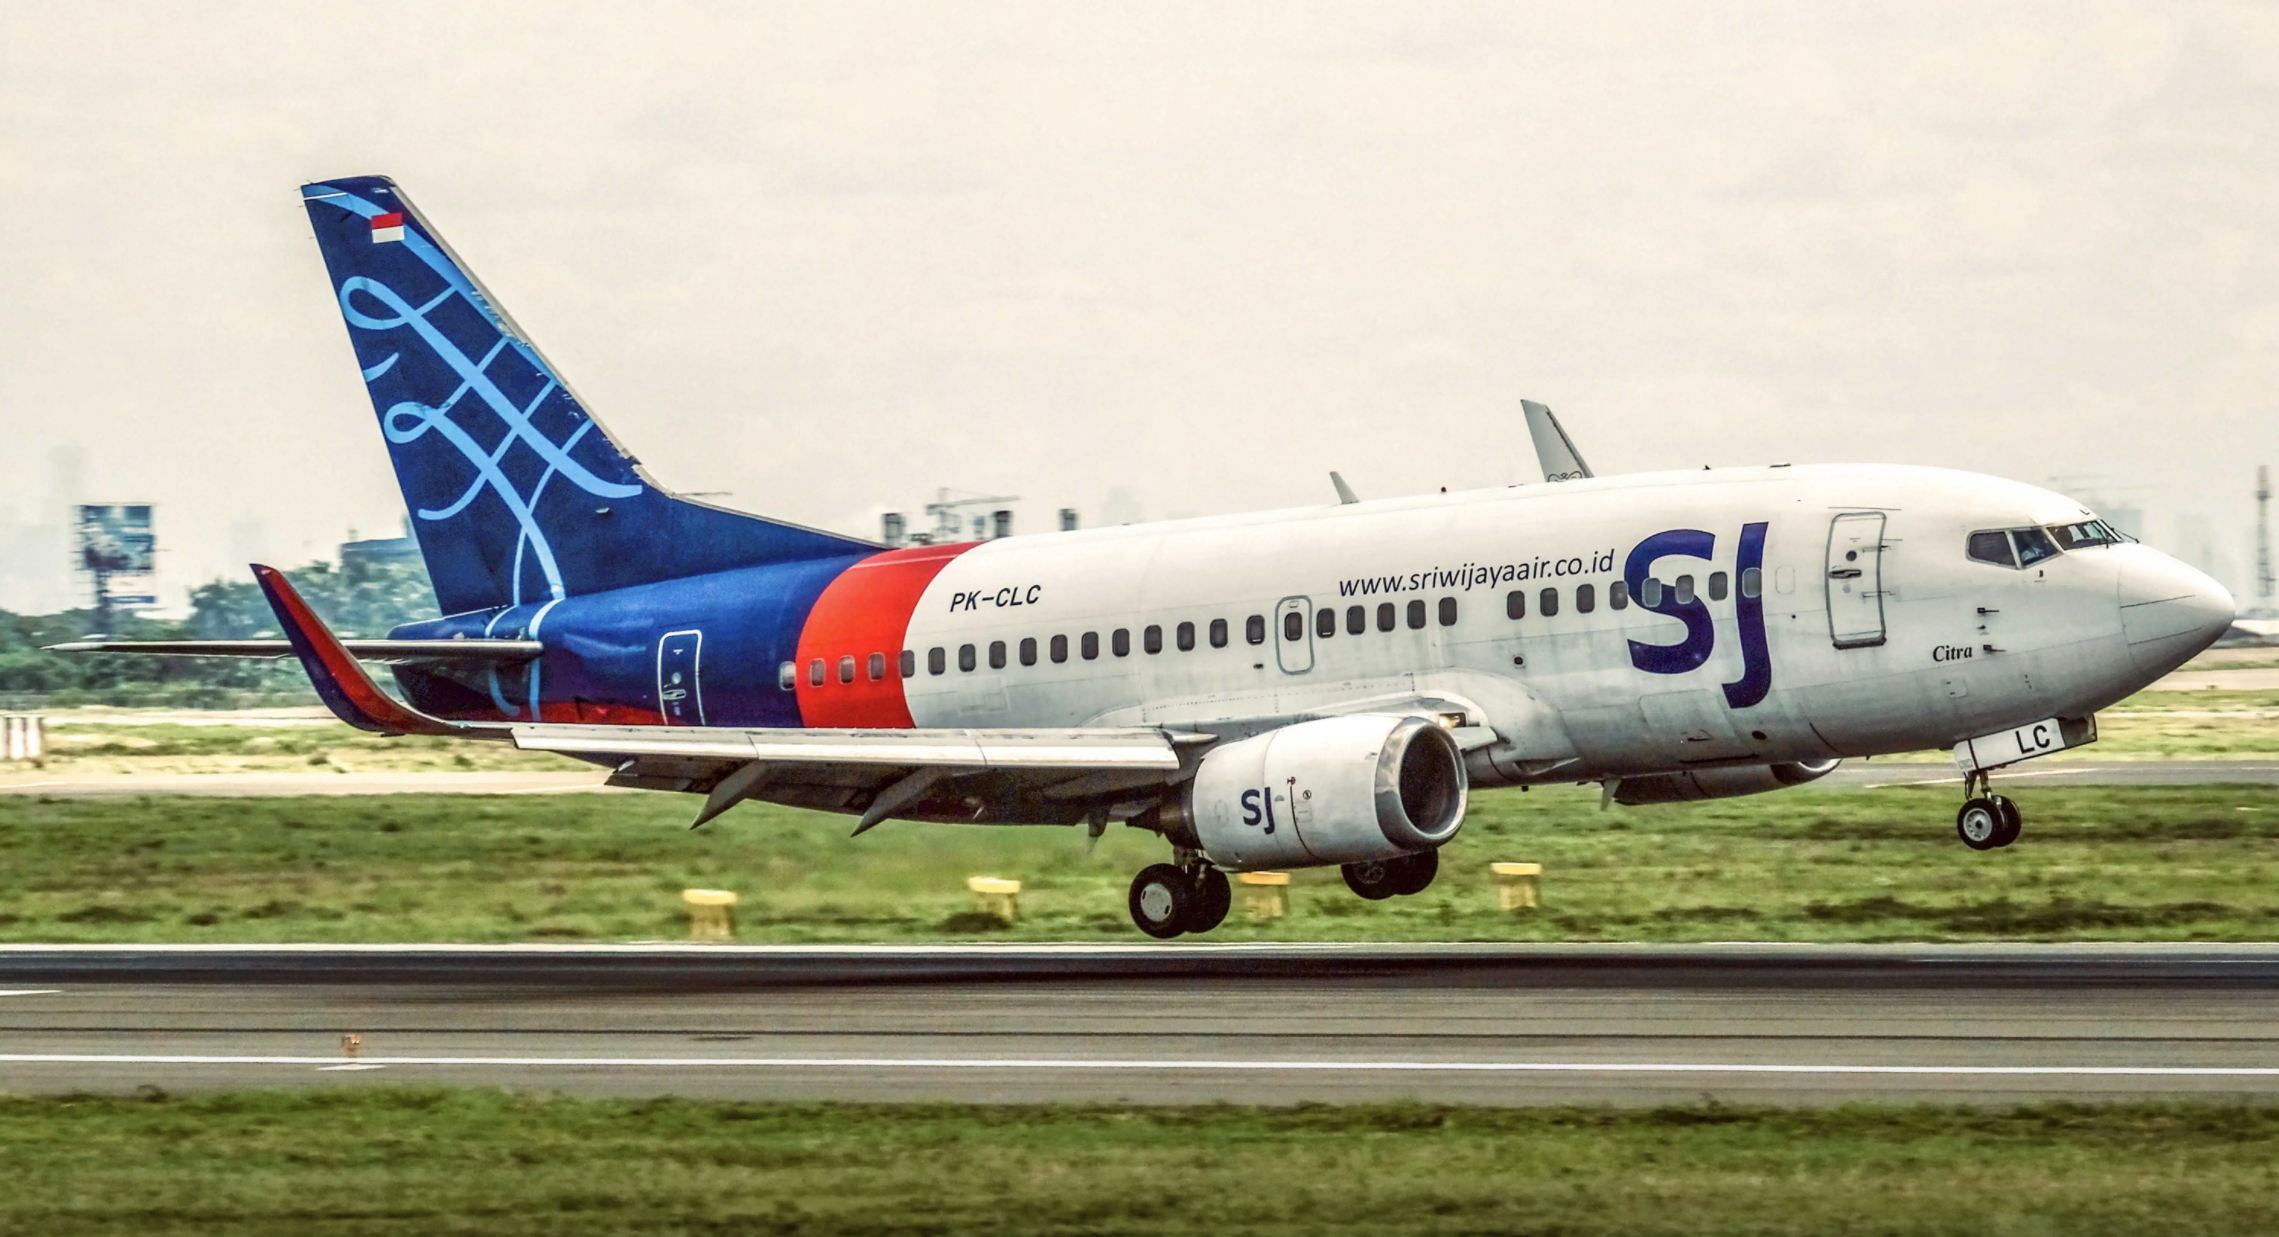 Picture of a Sriwijaya Air Lines Plane